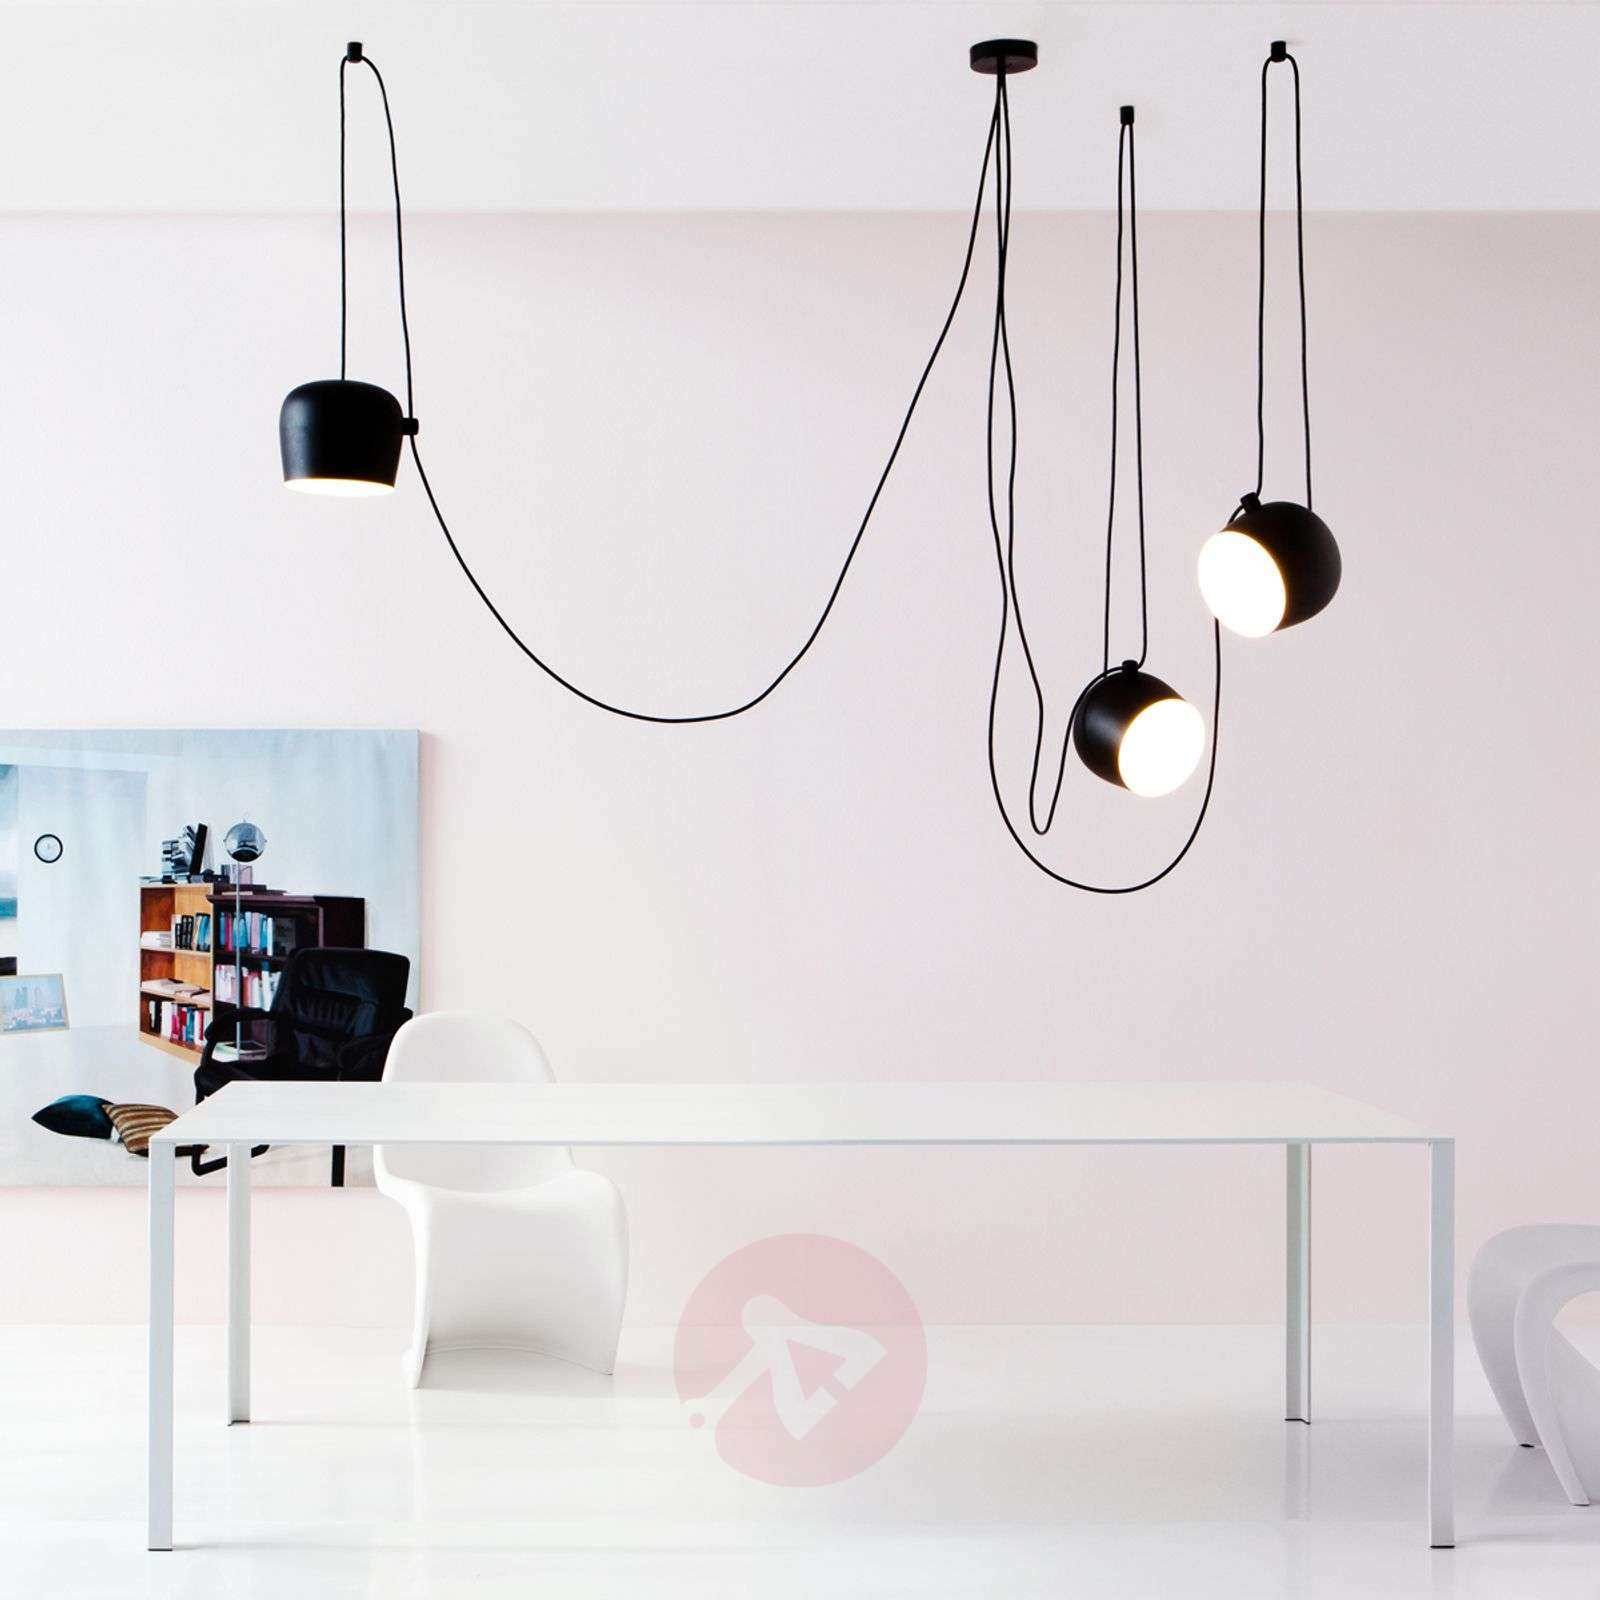 Aim Small switch Dim EUR black pendant light-3510325-06